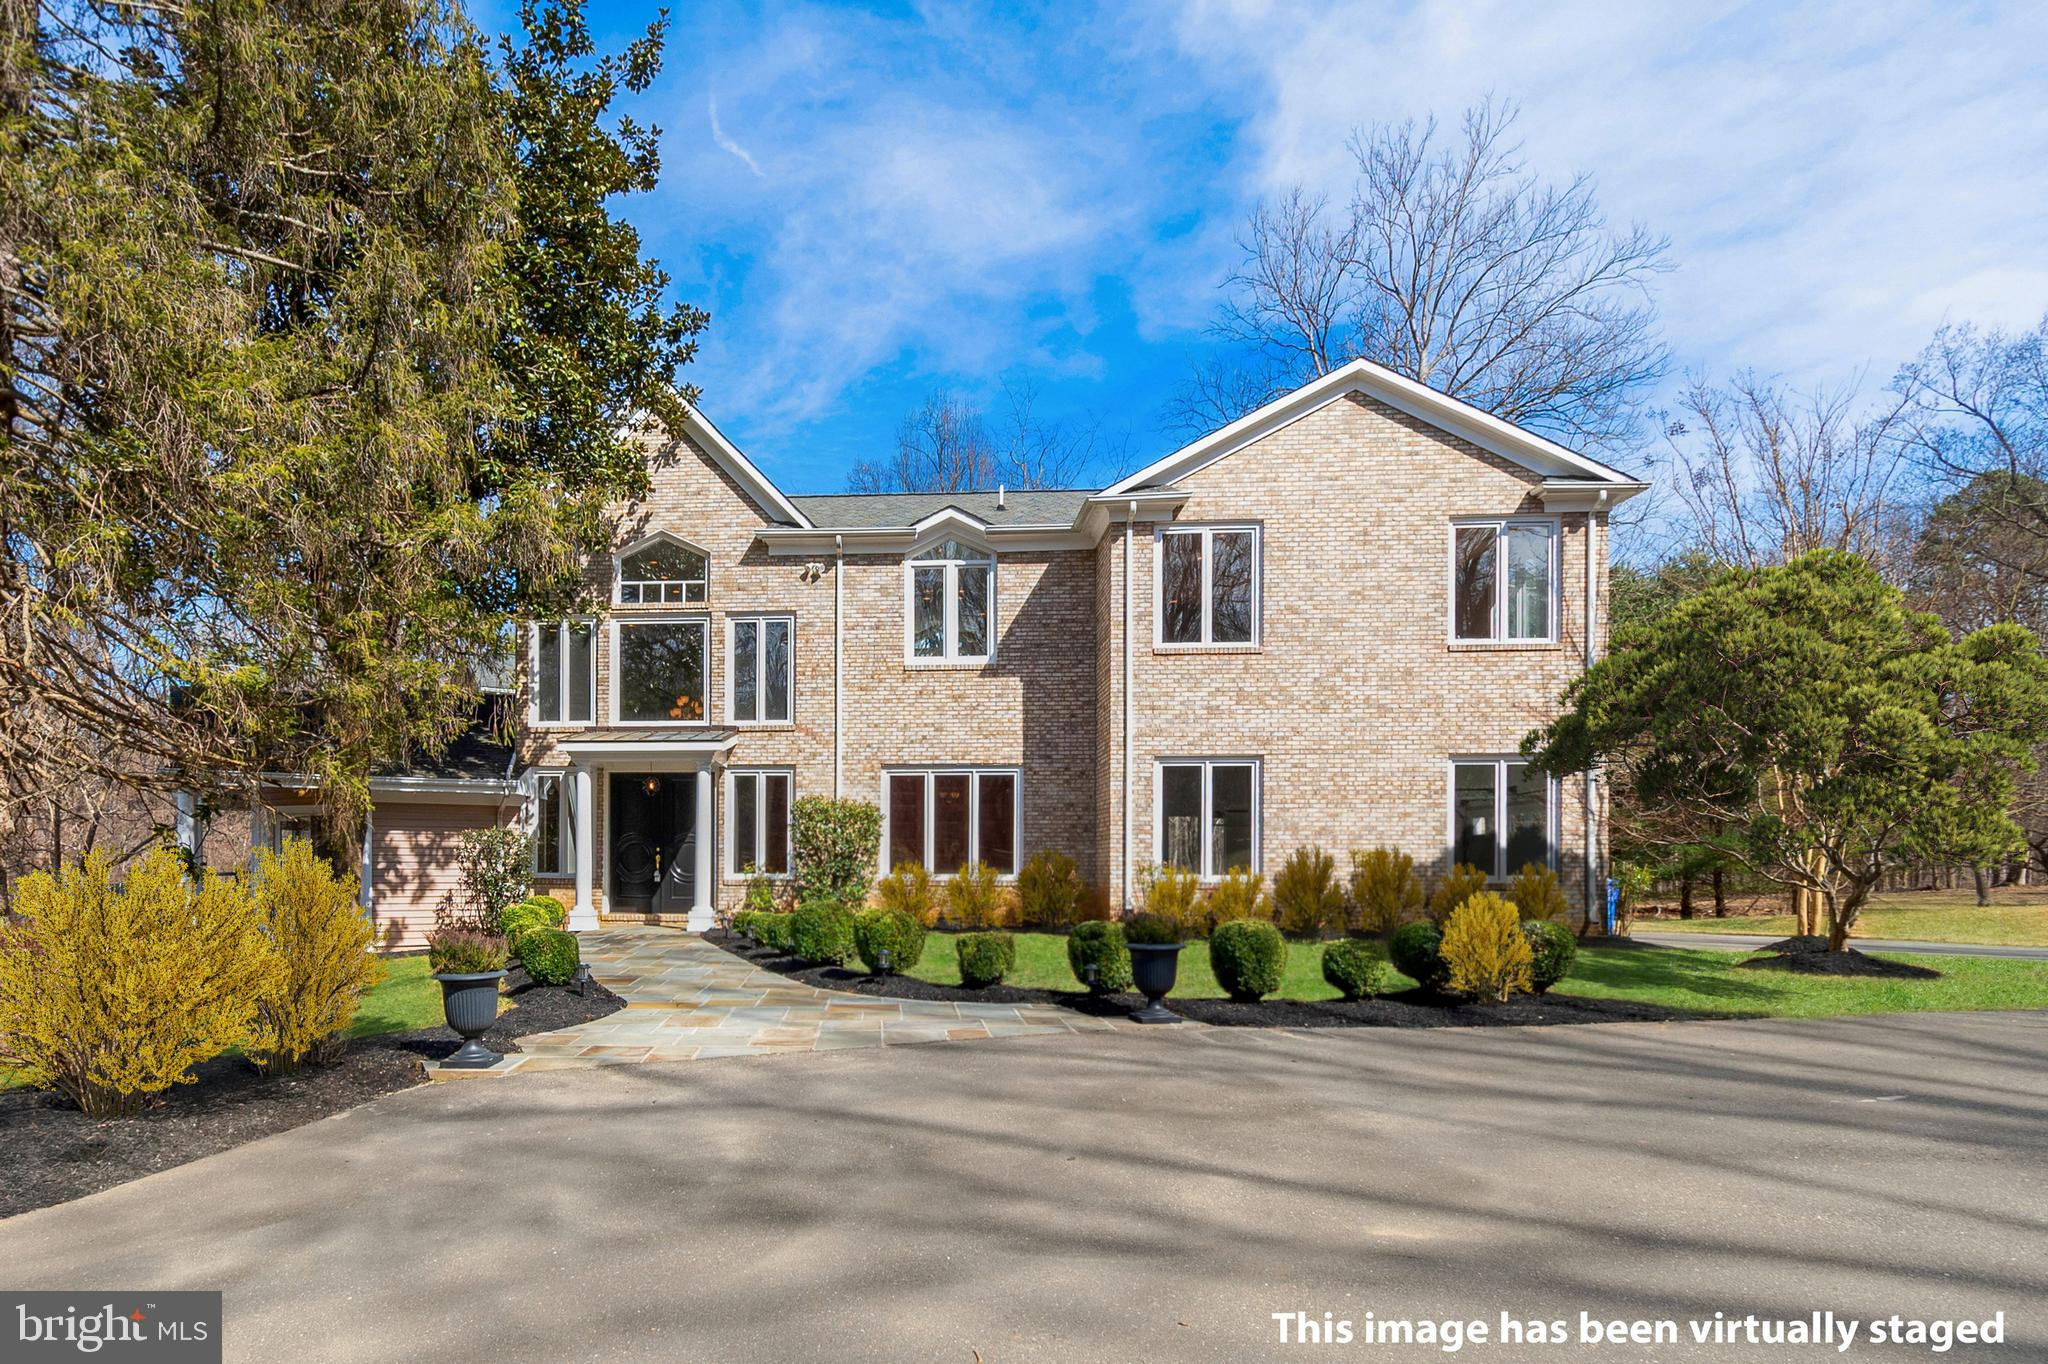 10,000+ square feet home is a private retreat on 3+ acres in the heart of Potomac! Glorious, contemporary open floor plan featuring 2 main level bedrooms with en suite baths! Stately office with high end built-ins and Sunroom flooded with natural light. Eat-in kitchen, formal dining room and family room with stone fireplace.  Dramatic Catwalk and Enormous Master Suite with grand sitting room, dual walk-in closets and spa-like bathroom.  Flagstone patios punctuate the landscape with a fenced dog run.  Possibility of adding pool and Tennis Courts .  Additional  2 acres available upon request and at additional cost. Property backs to protected reserve (Kilgour Branch Stream Valley Park). Minutes to Potomac Village restaurants and boutiques, Montgomery Mall, and 495 & 270. Contact an agent to schedule your appointment.